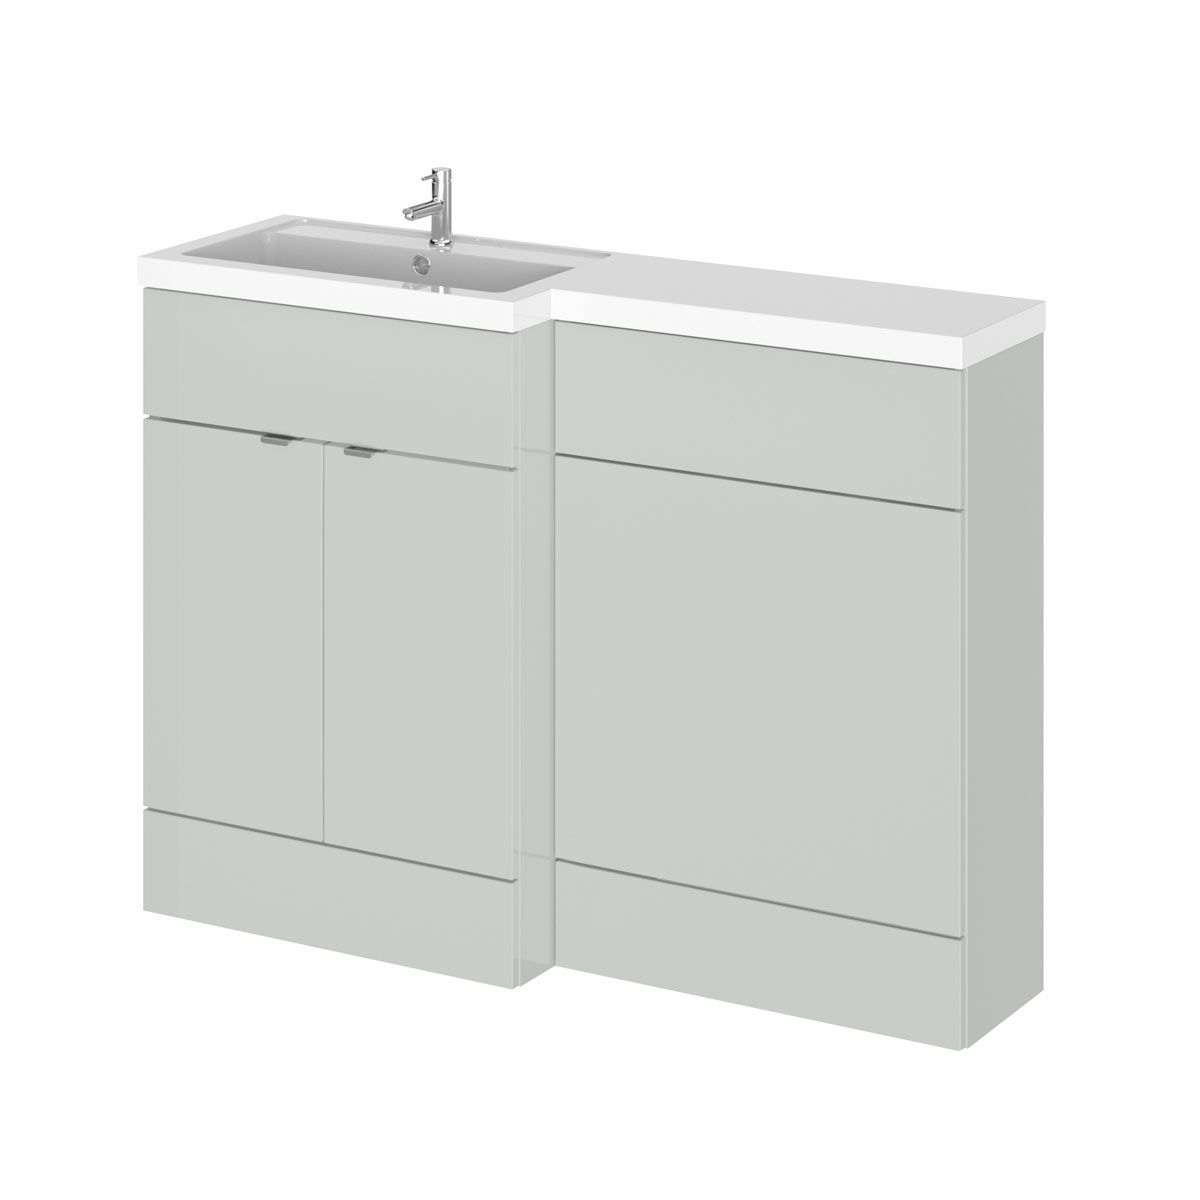 Hudson Reed Fusion Gloss Grey Mist Full Depth Combination Furniture Pack 1200mm Left Hand